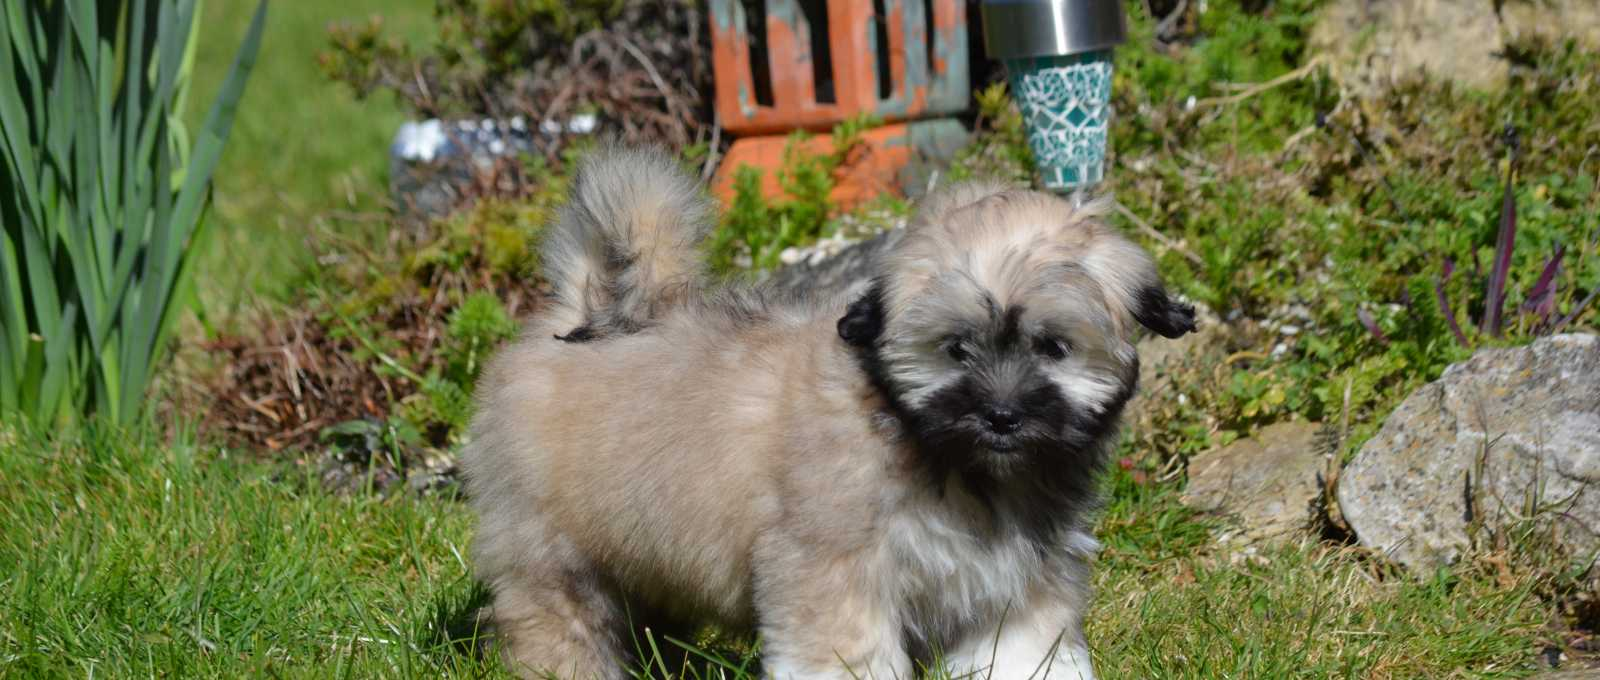 Lhasa Apso Puppy walking on the grass